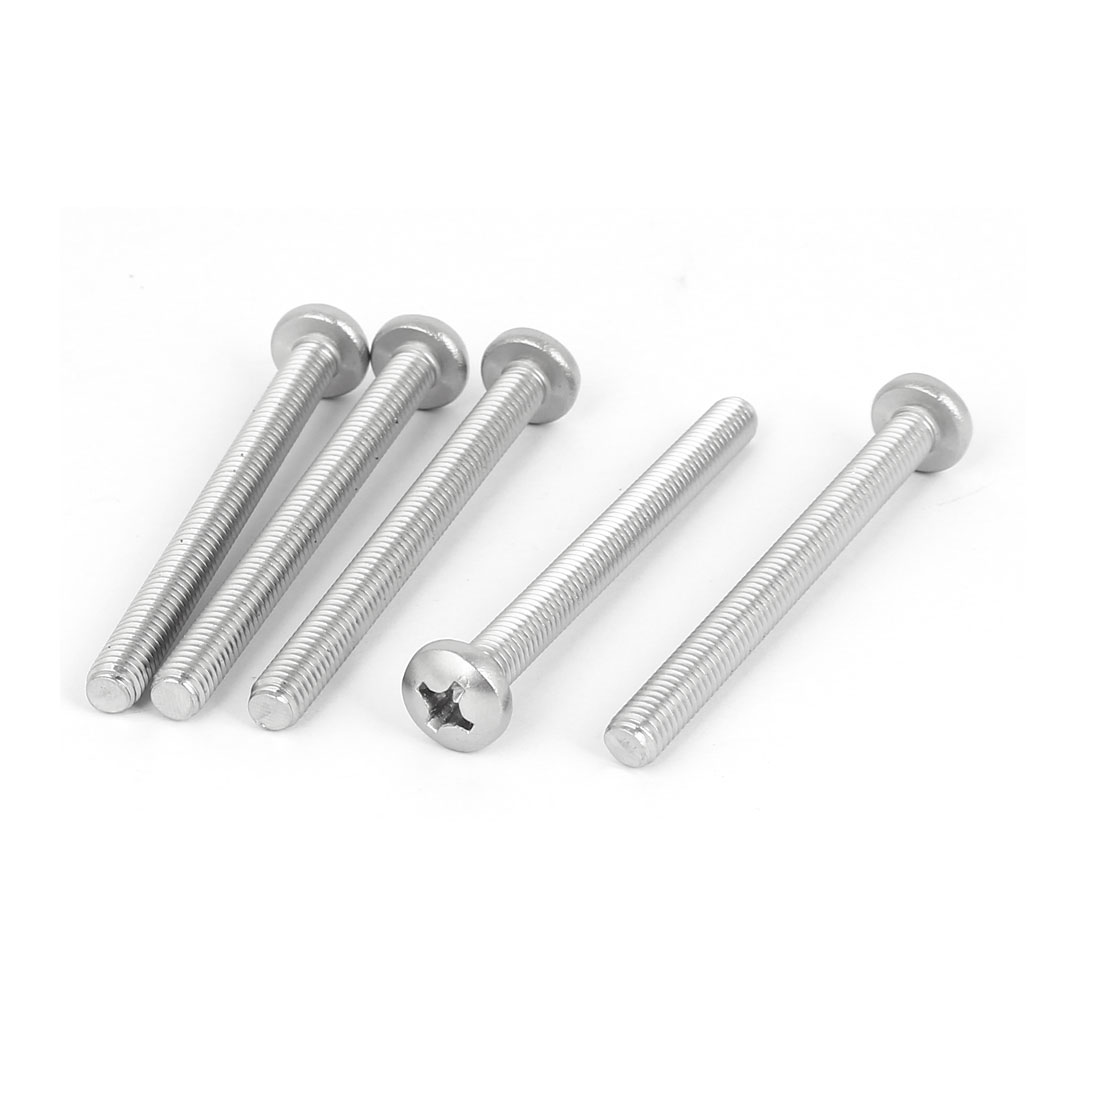 5 Pcs M6x65mm 316 Stainless Steel Phillips Pan Head Machine Screws Fasteners